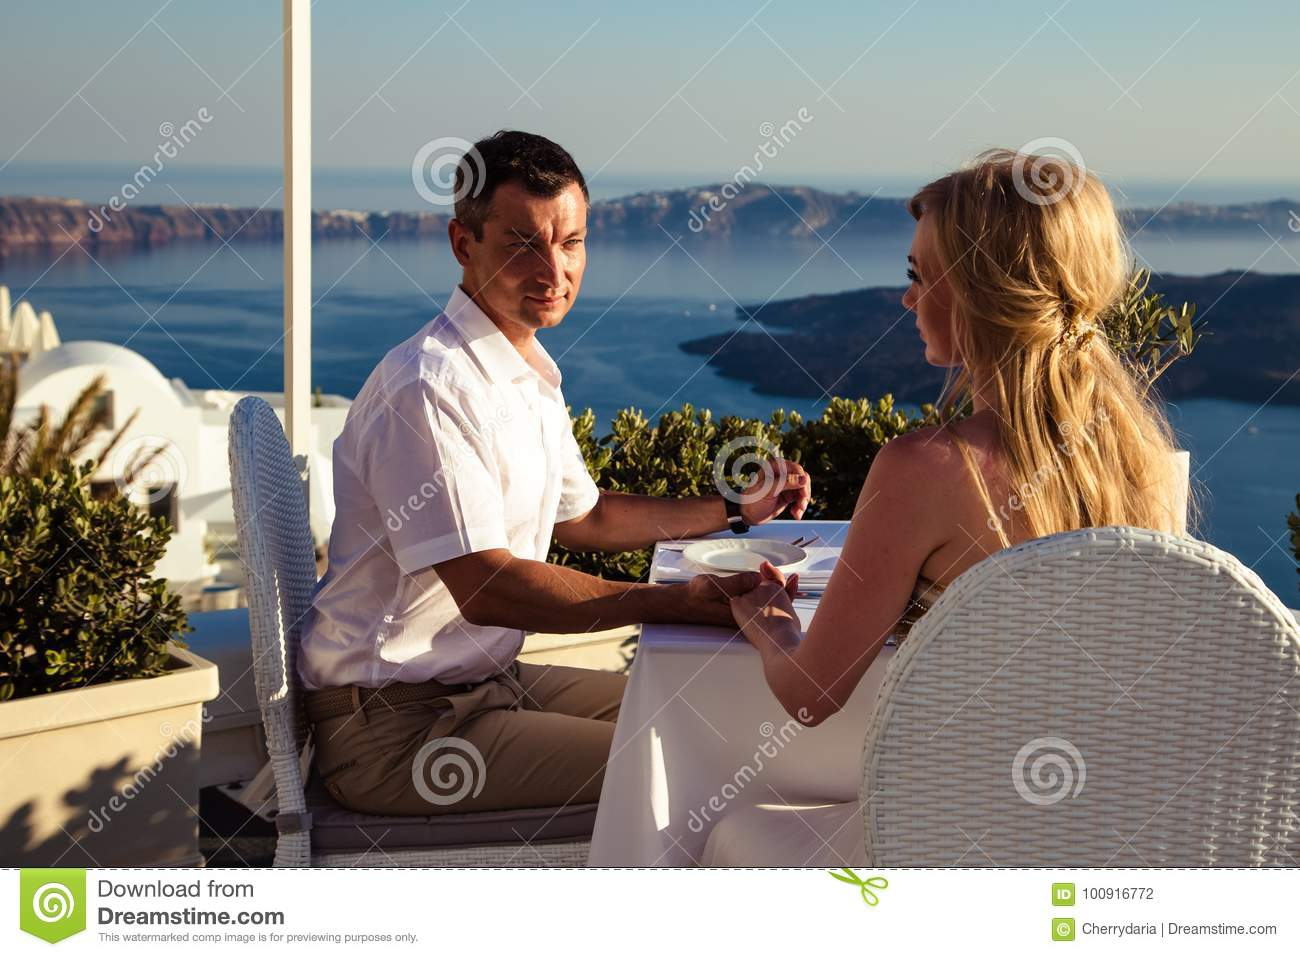 Download Beautiful Bride And Groom In Their Summer Wedding Day On Greek Island Santorini Stock Photo - Image of dress, good: 100916772